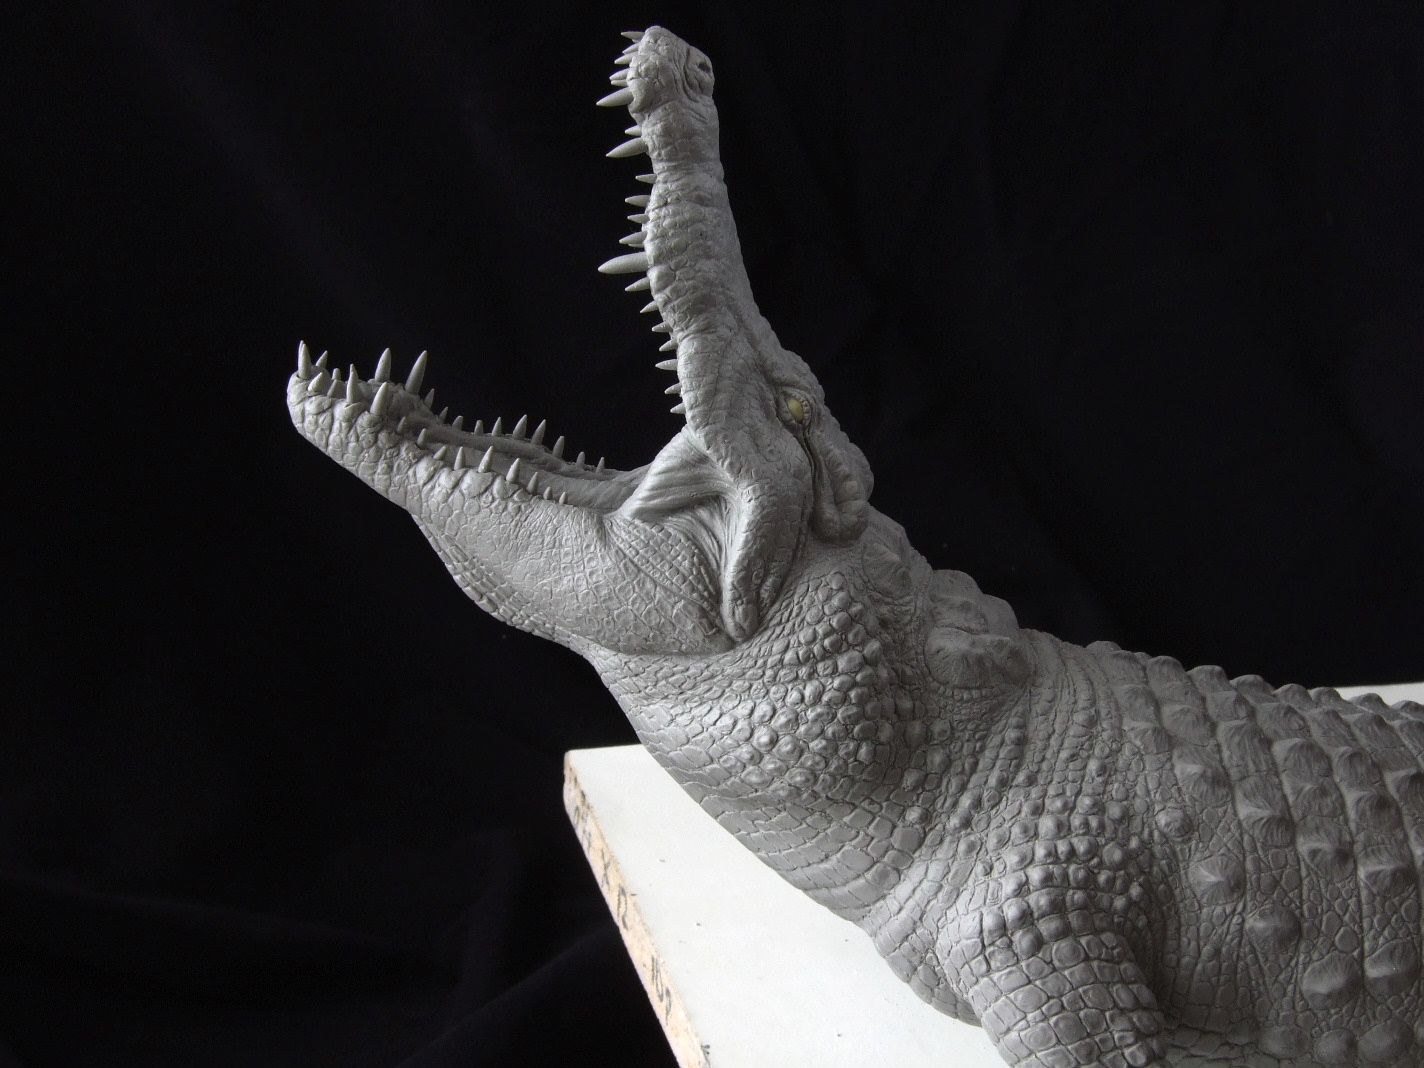 Nile Crocodile sculpt head closeup by revenant99 on